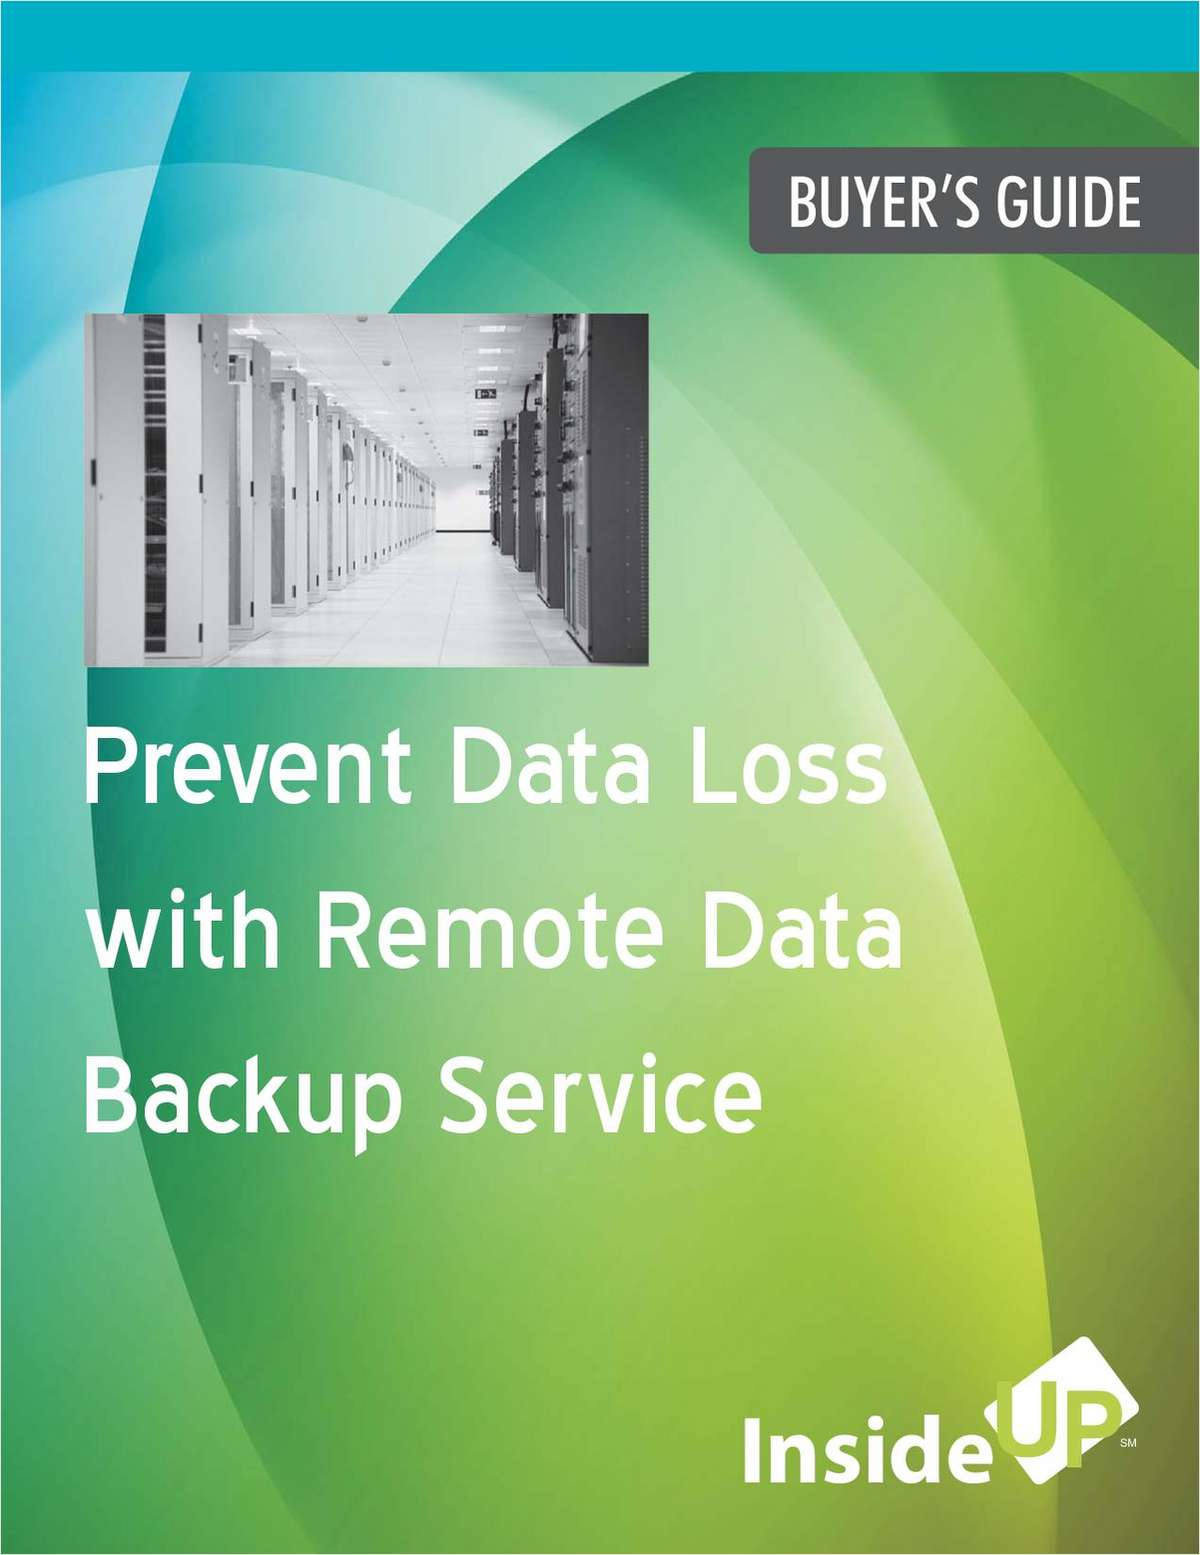 Prevent Data Loss with Remote Online Backup Service